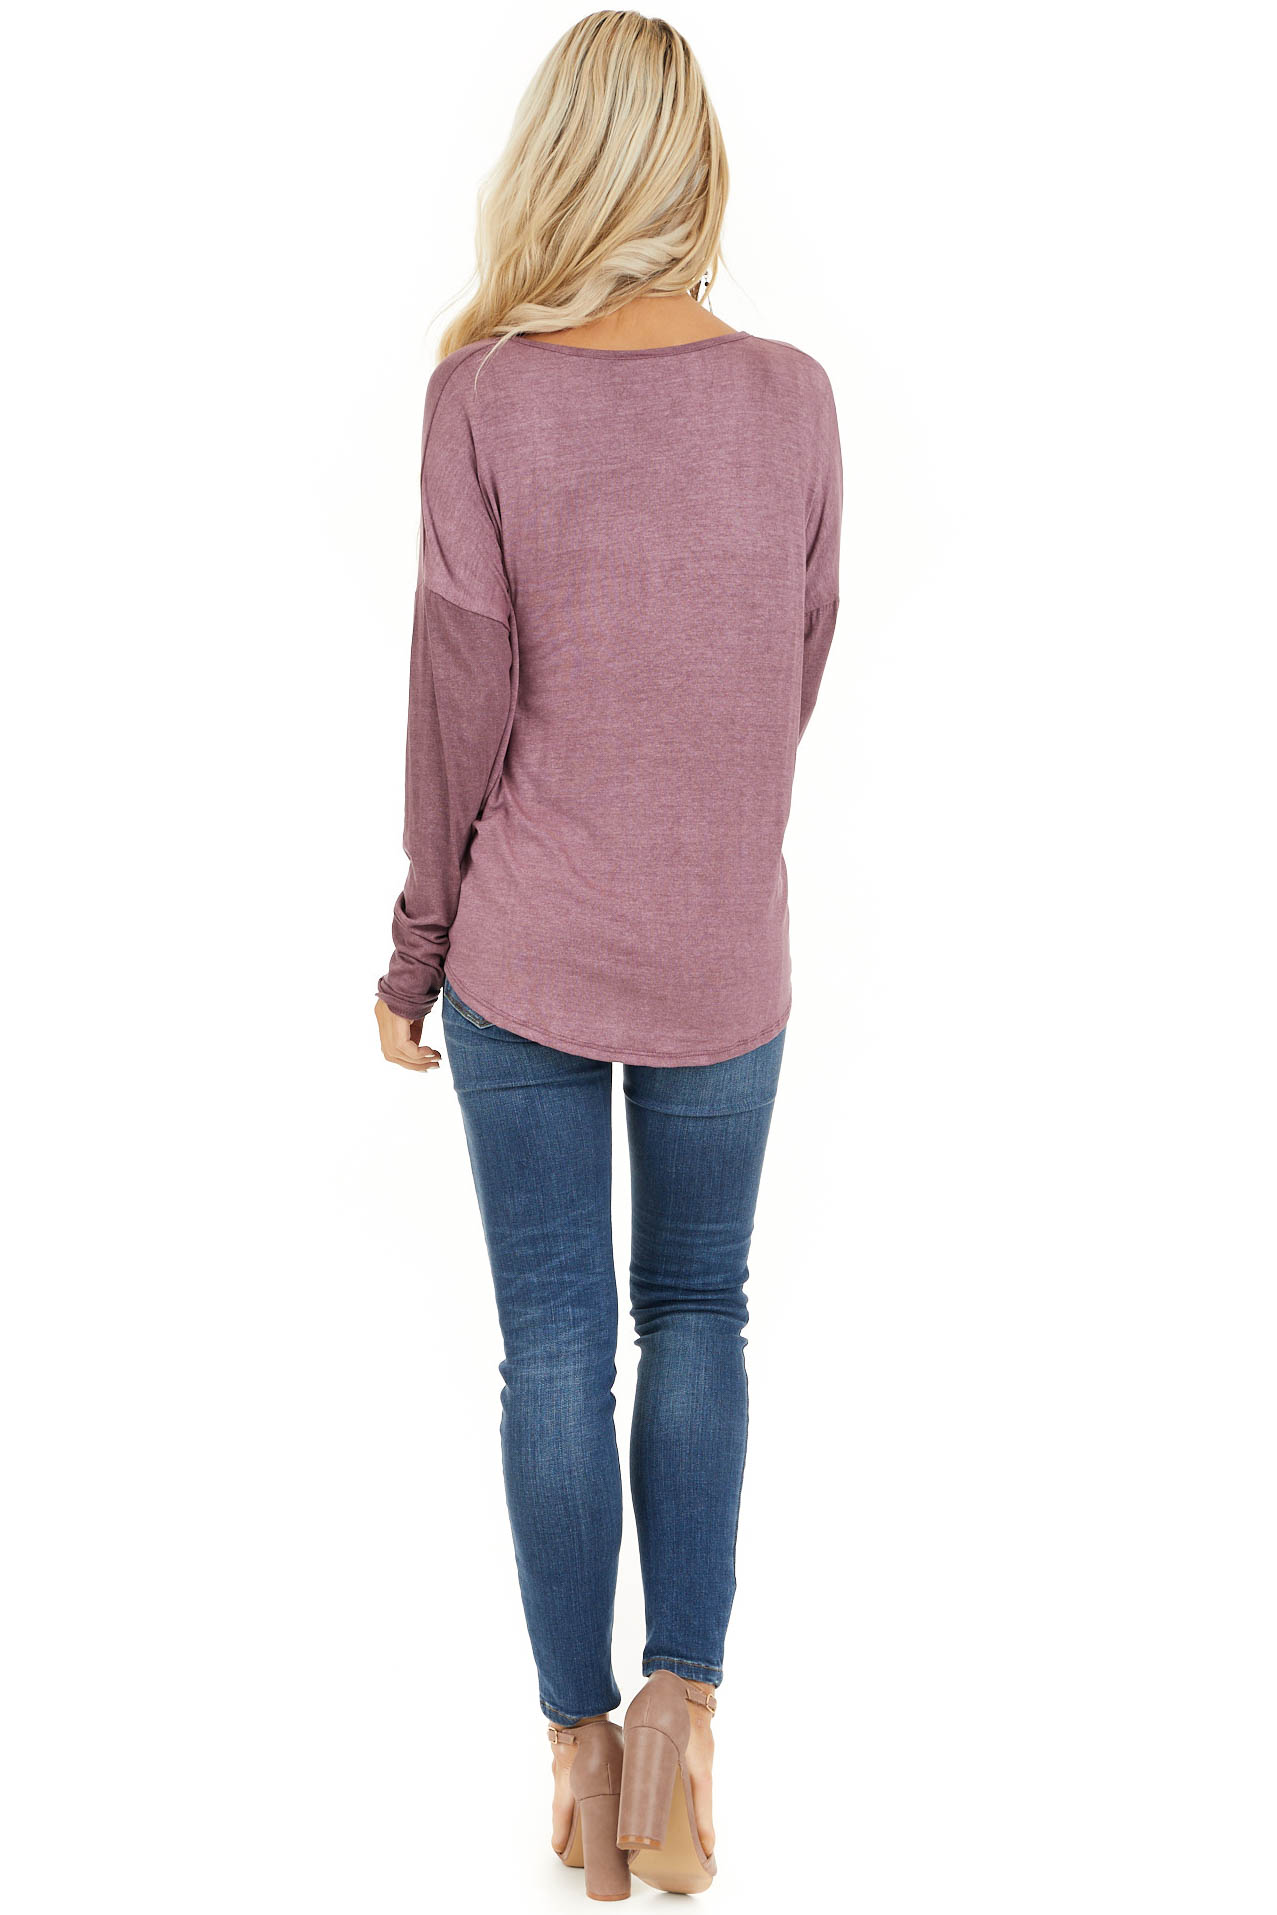 Faded Burgundy Long Sleeve Top with High Low Bubble Hemline back full body